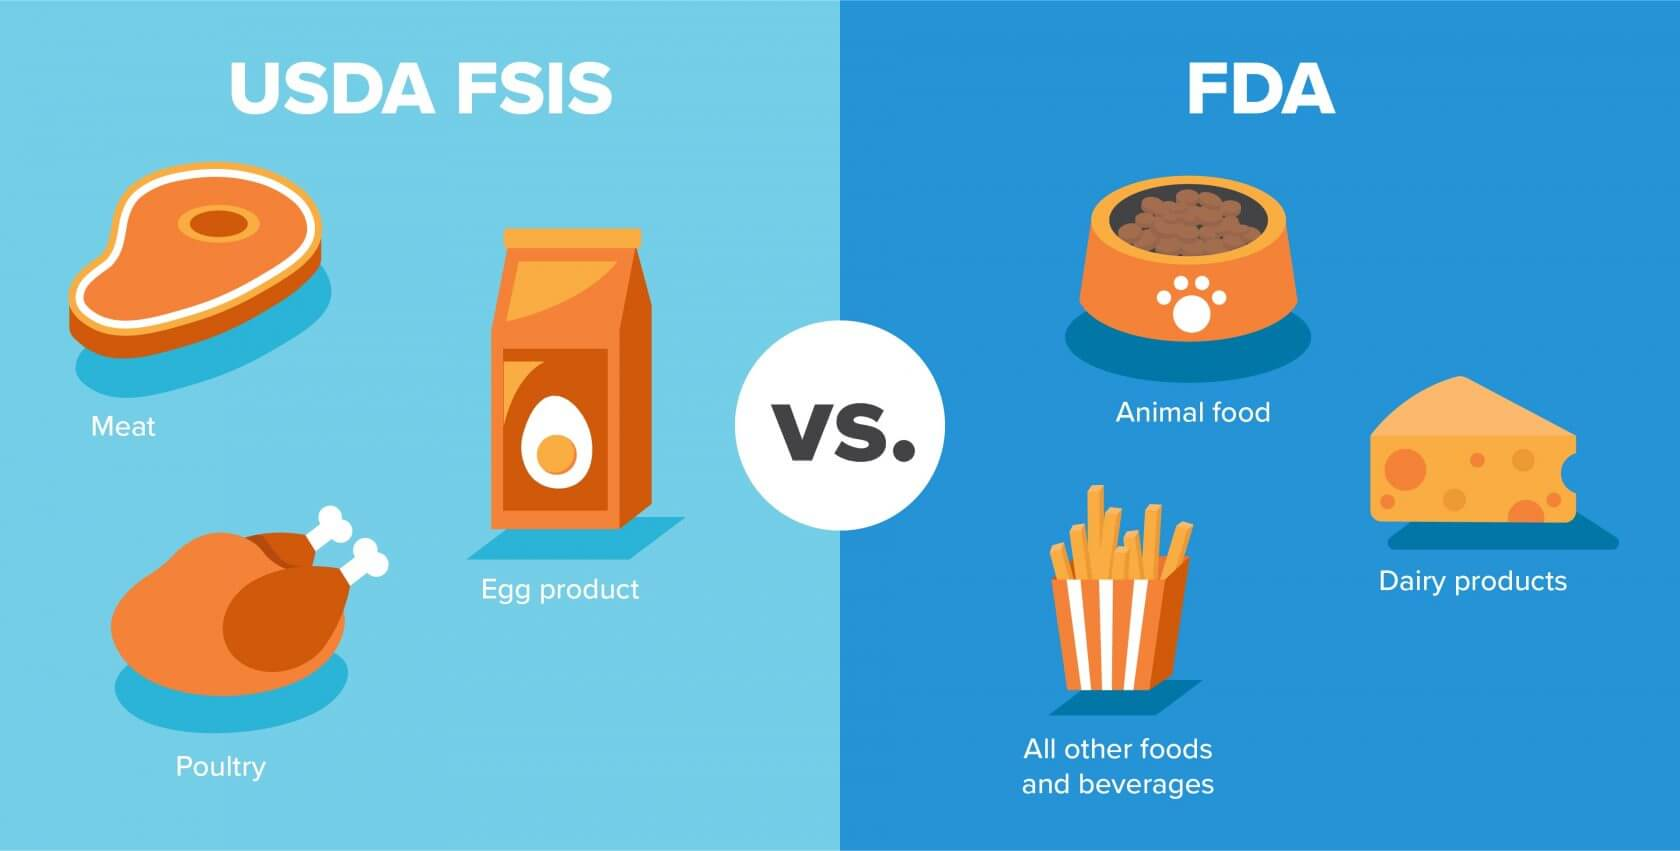 Under USDA FSIS: Meat, Egg product, poultry. Under FDA: Animal food, dairy products, all other foods and beverages.